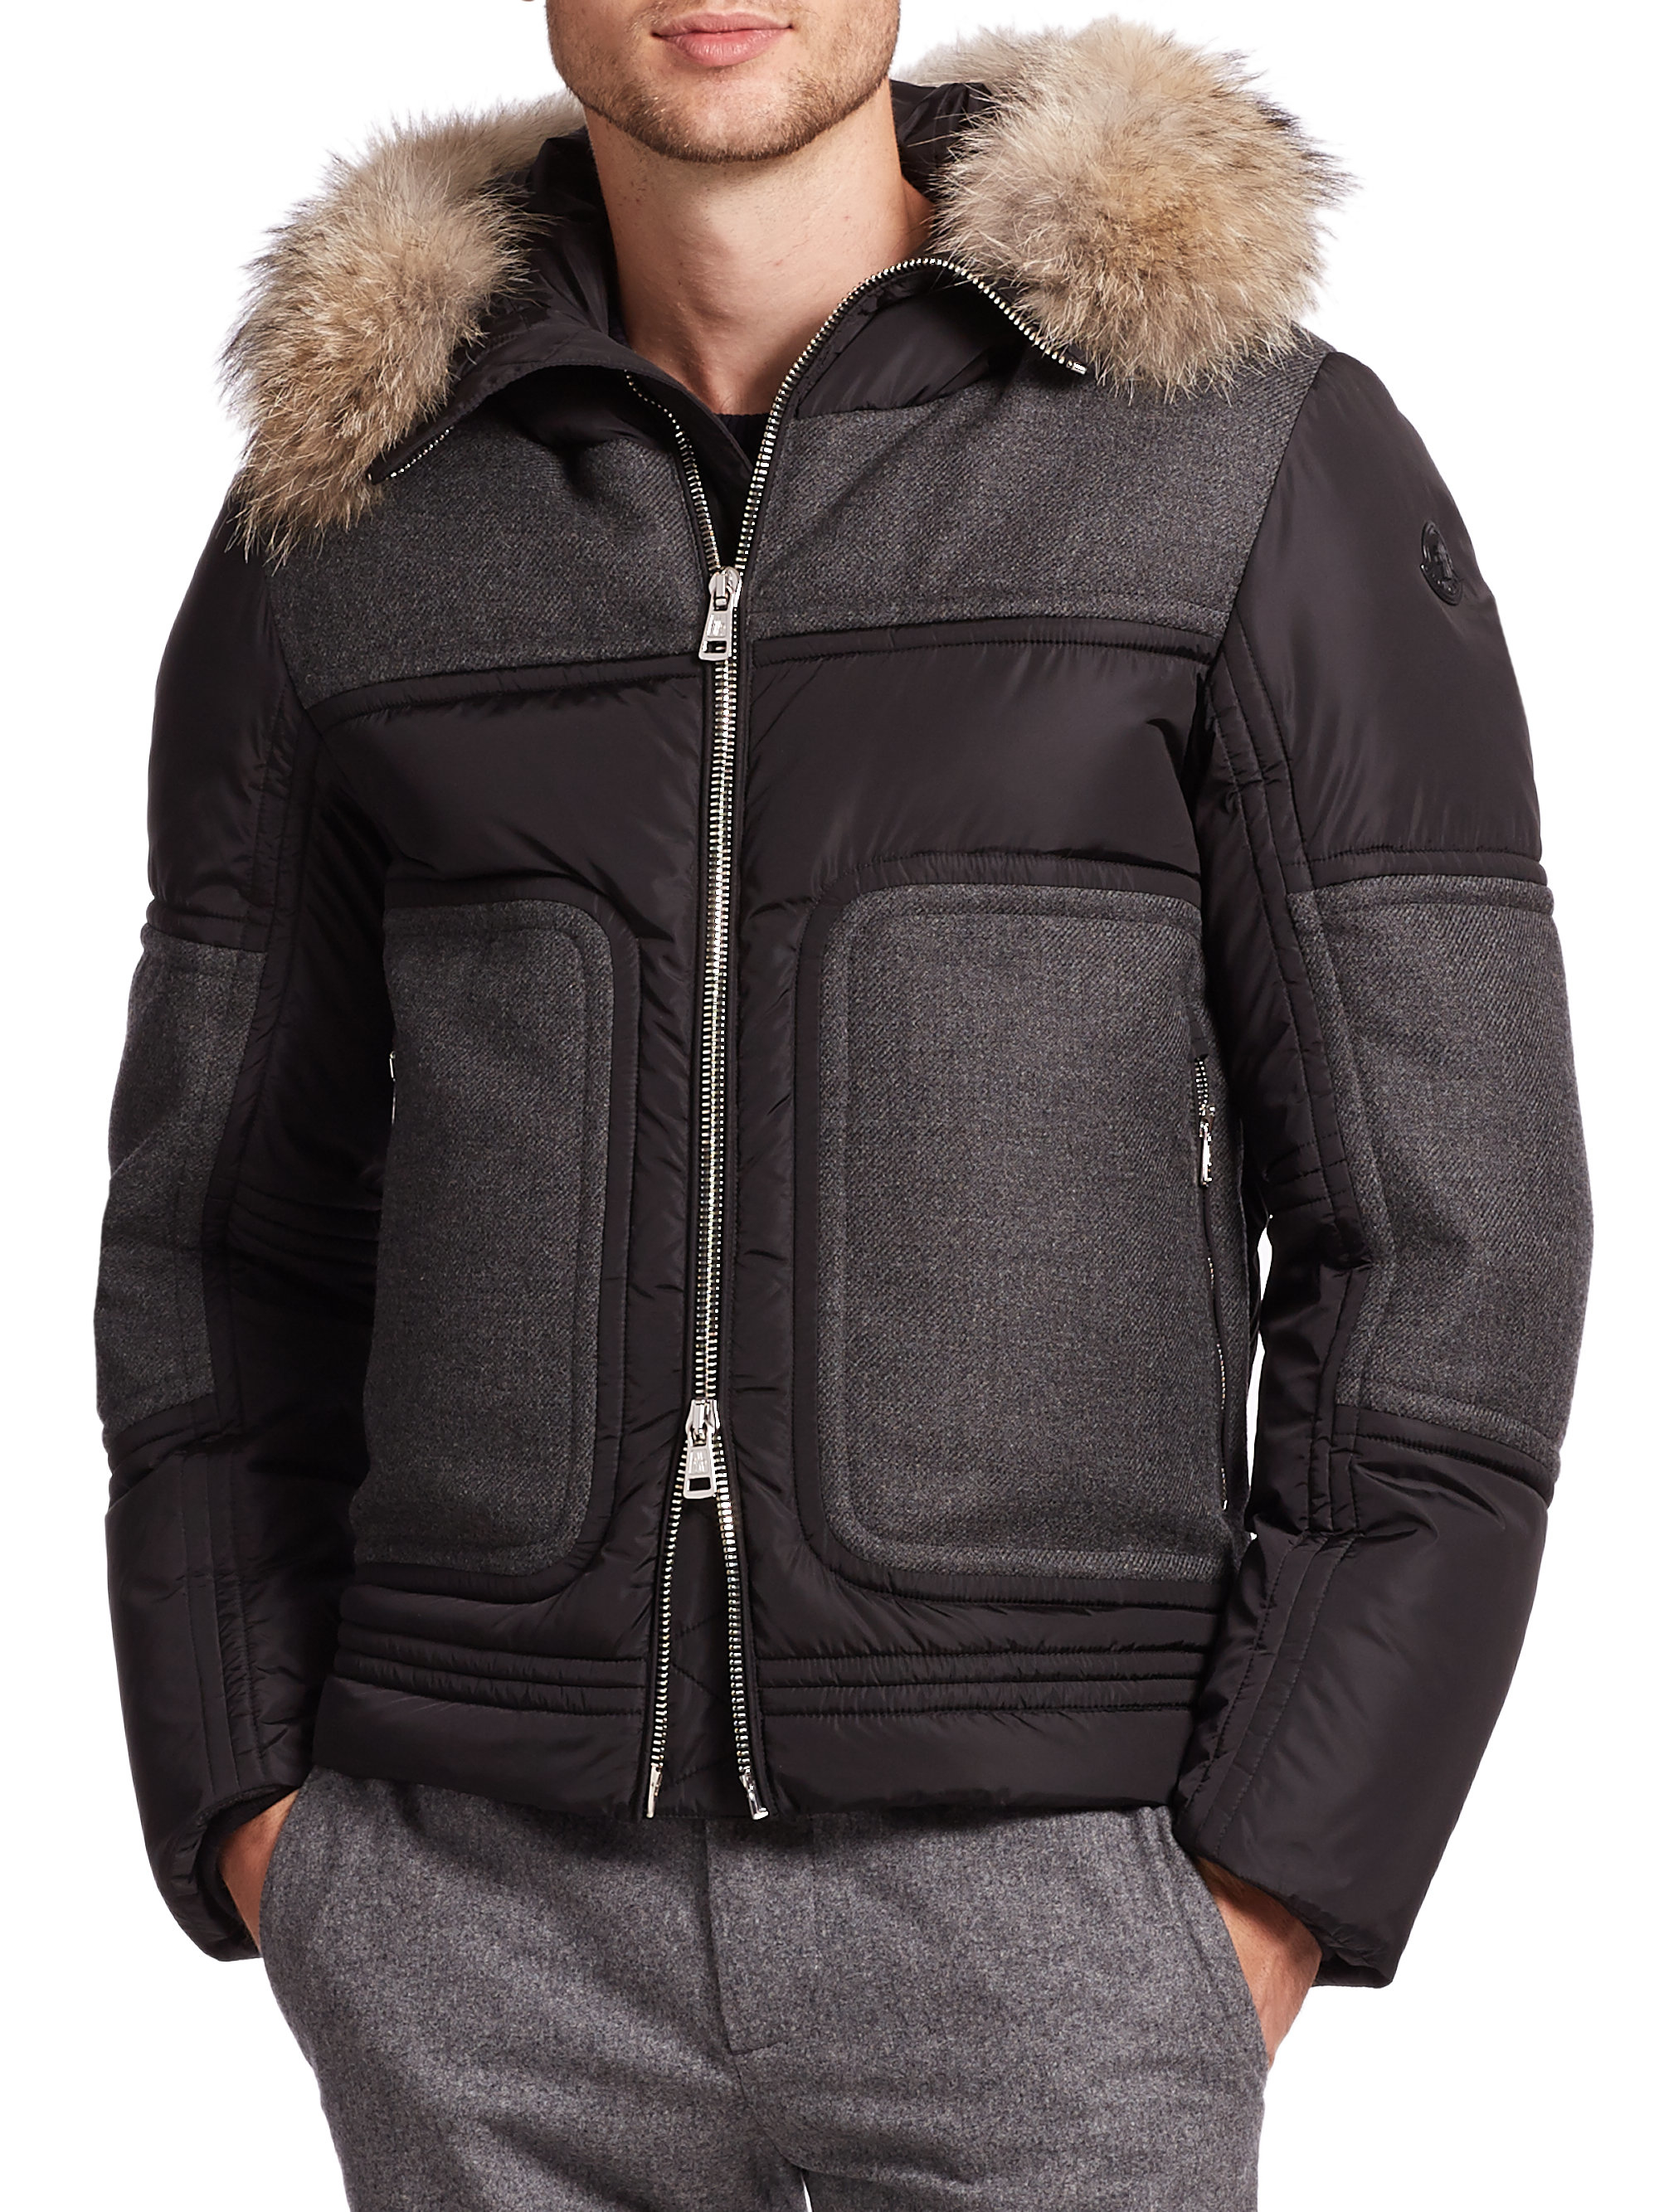 Mens moncler jacket sale